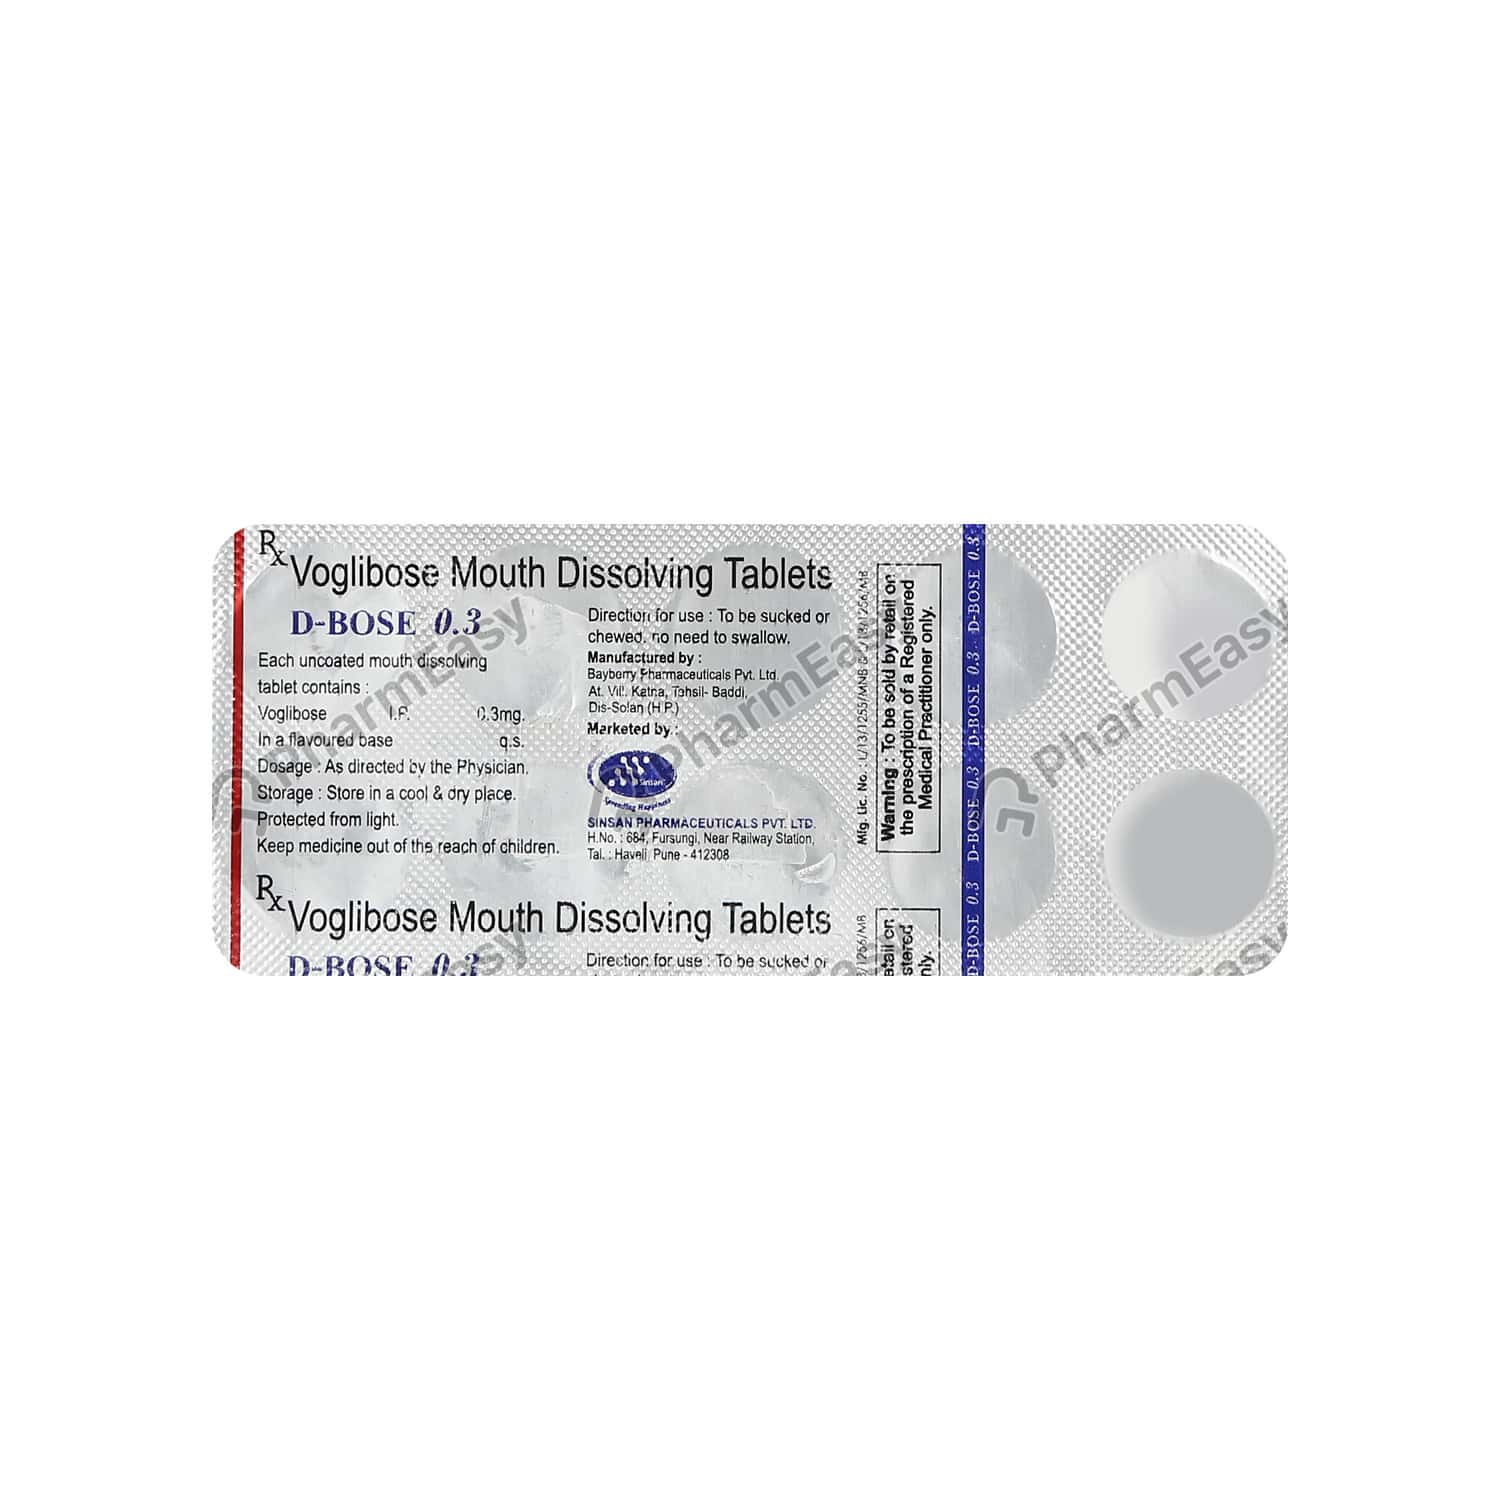 D Bose 0.3mg Tablet